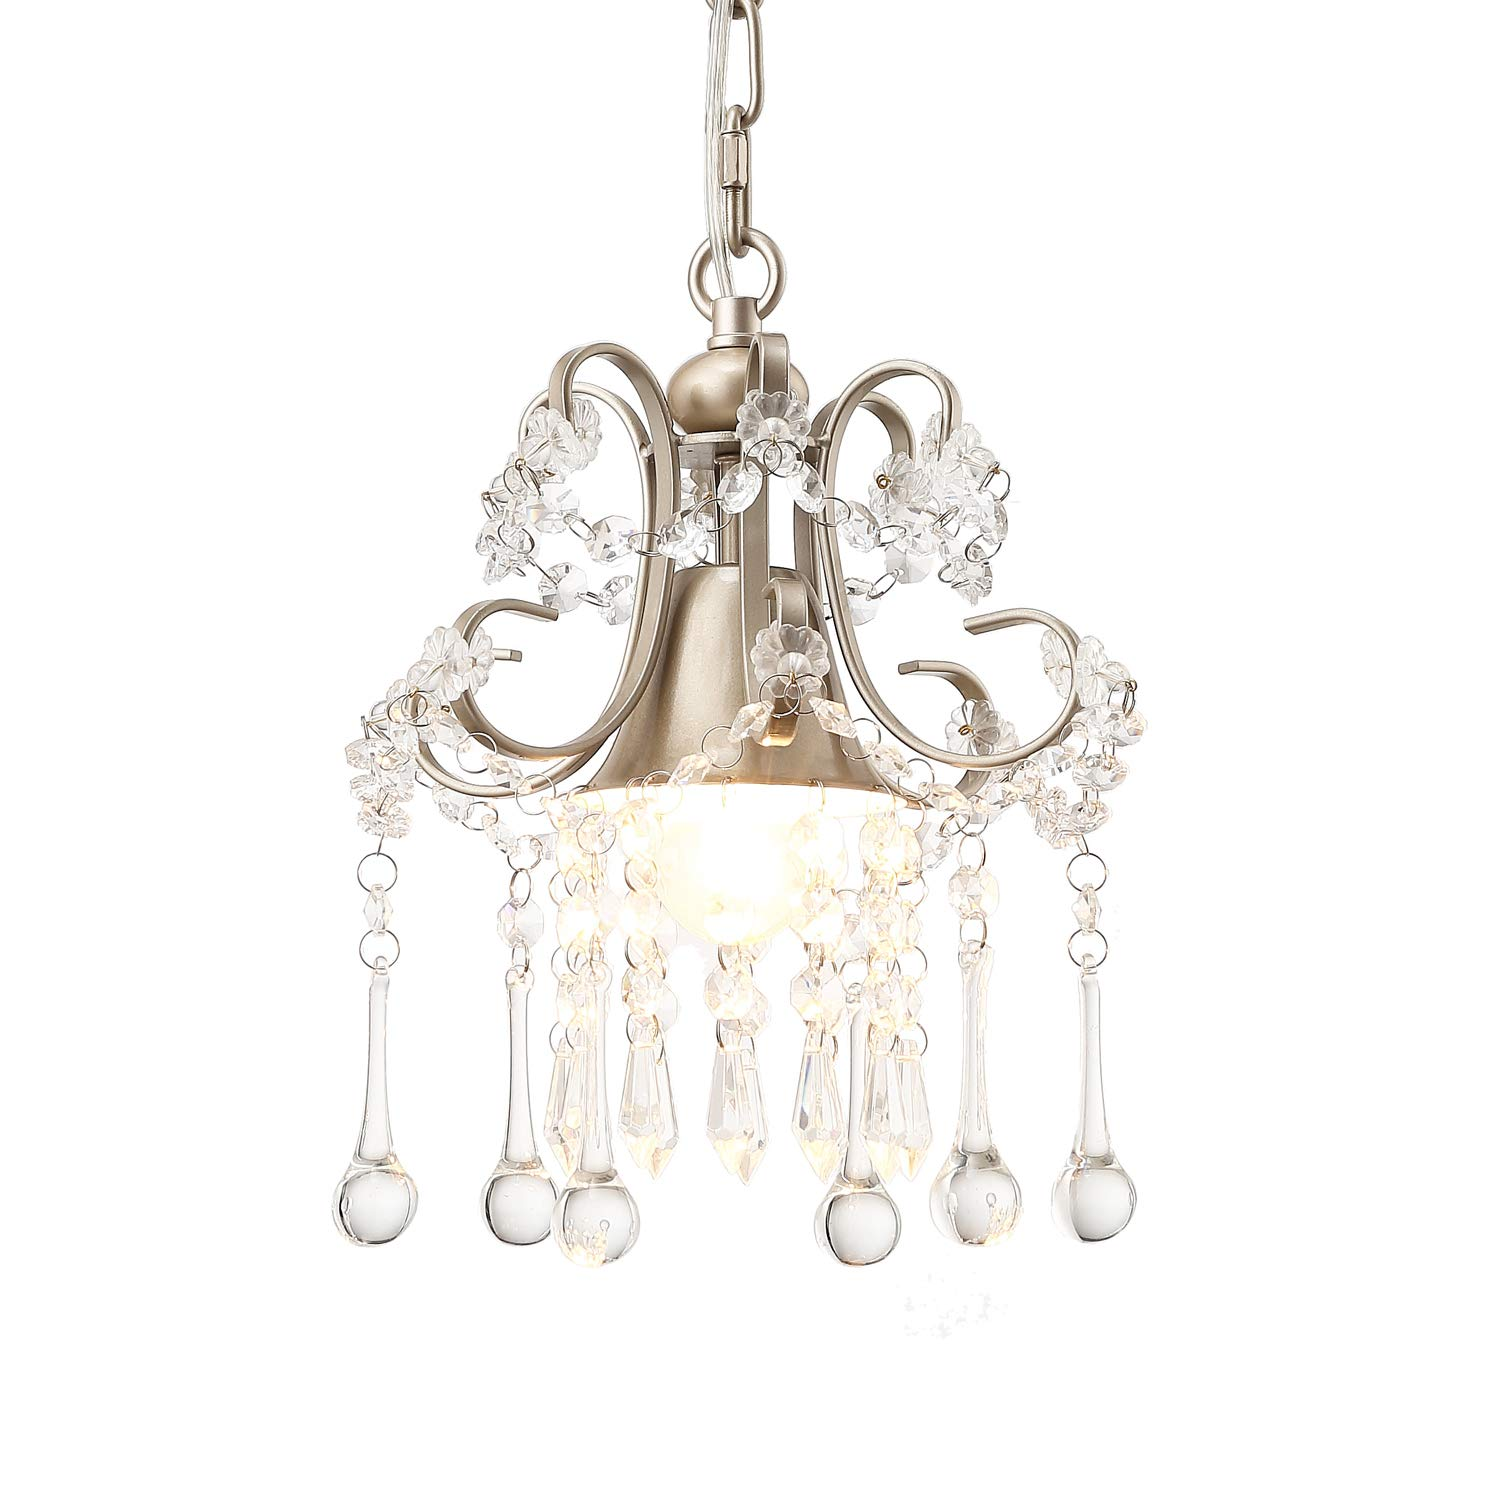 Garwarm Mini Style Clear Crystal Chandeliers, Ceiling Lights,Crystal Pendant Light,Ceiling Light Fixtures for Living Room Bedroom Restaurant Porch Chandelier,1-Light,Champagne